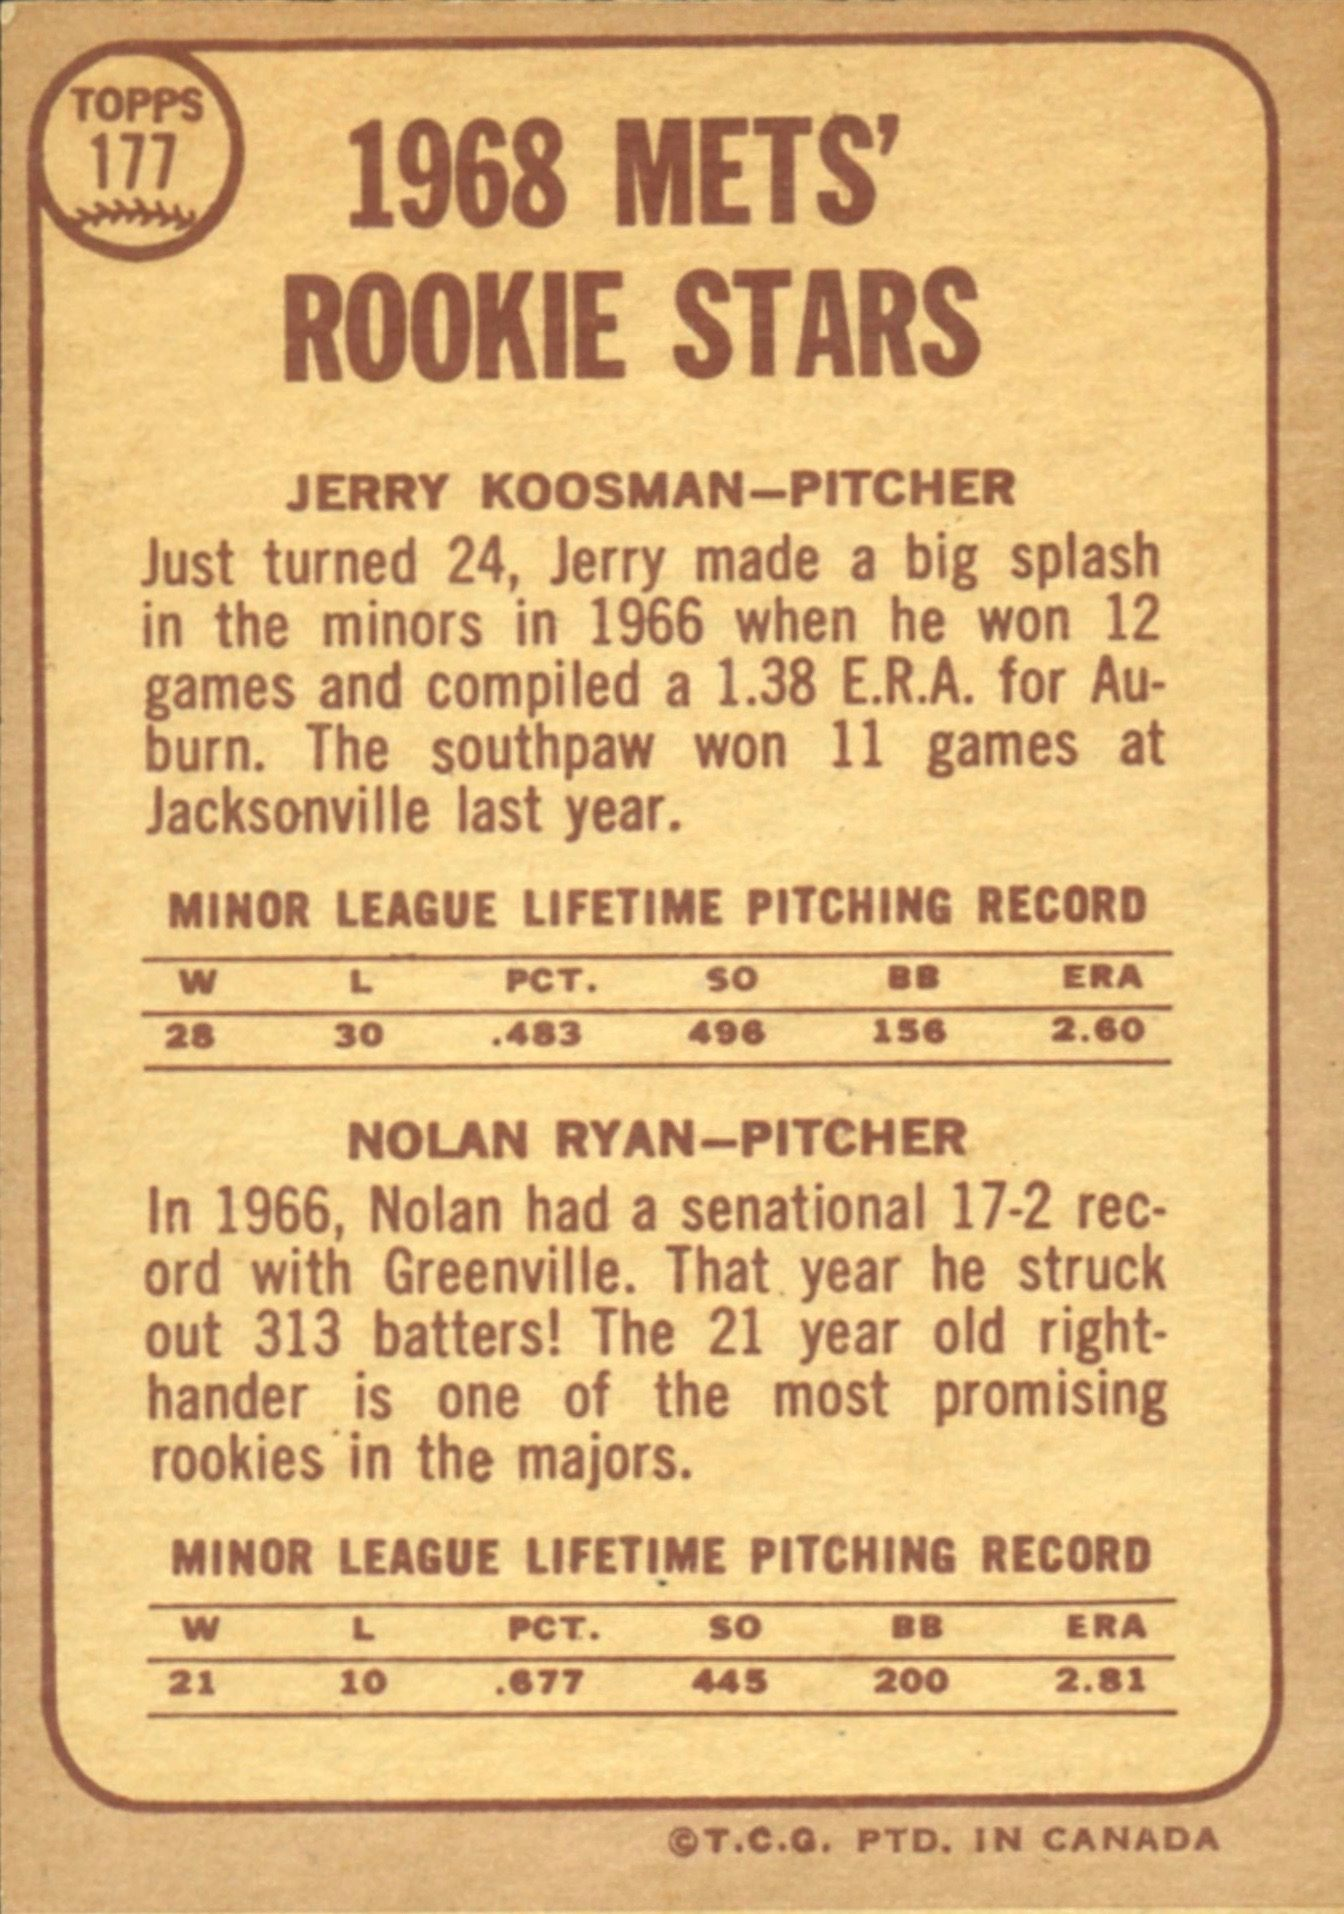 1968 Topps Nolan Ryan Rookie Card The Ultimate Collectors